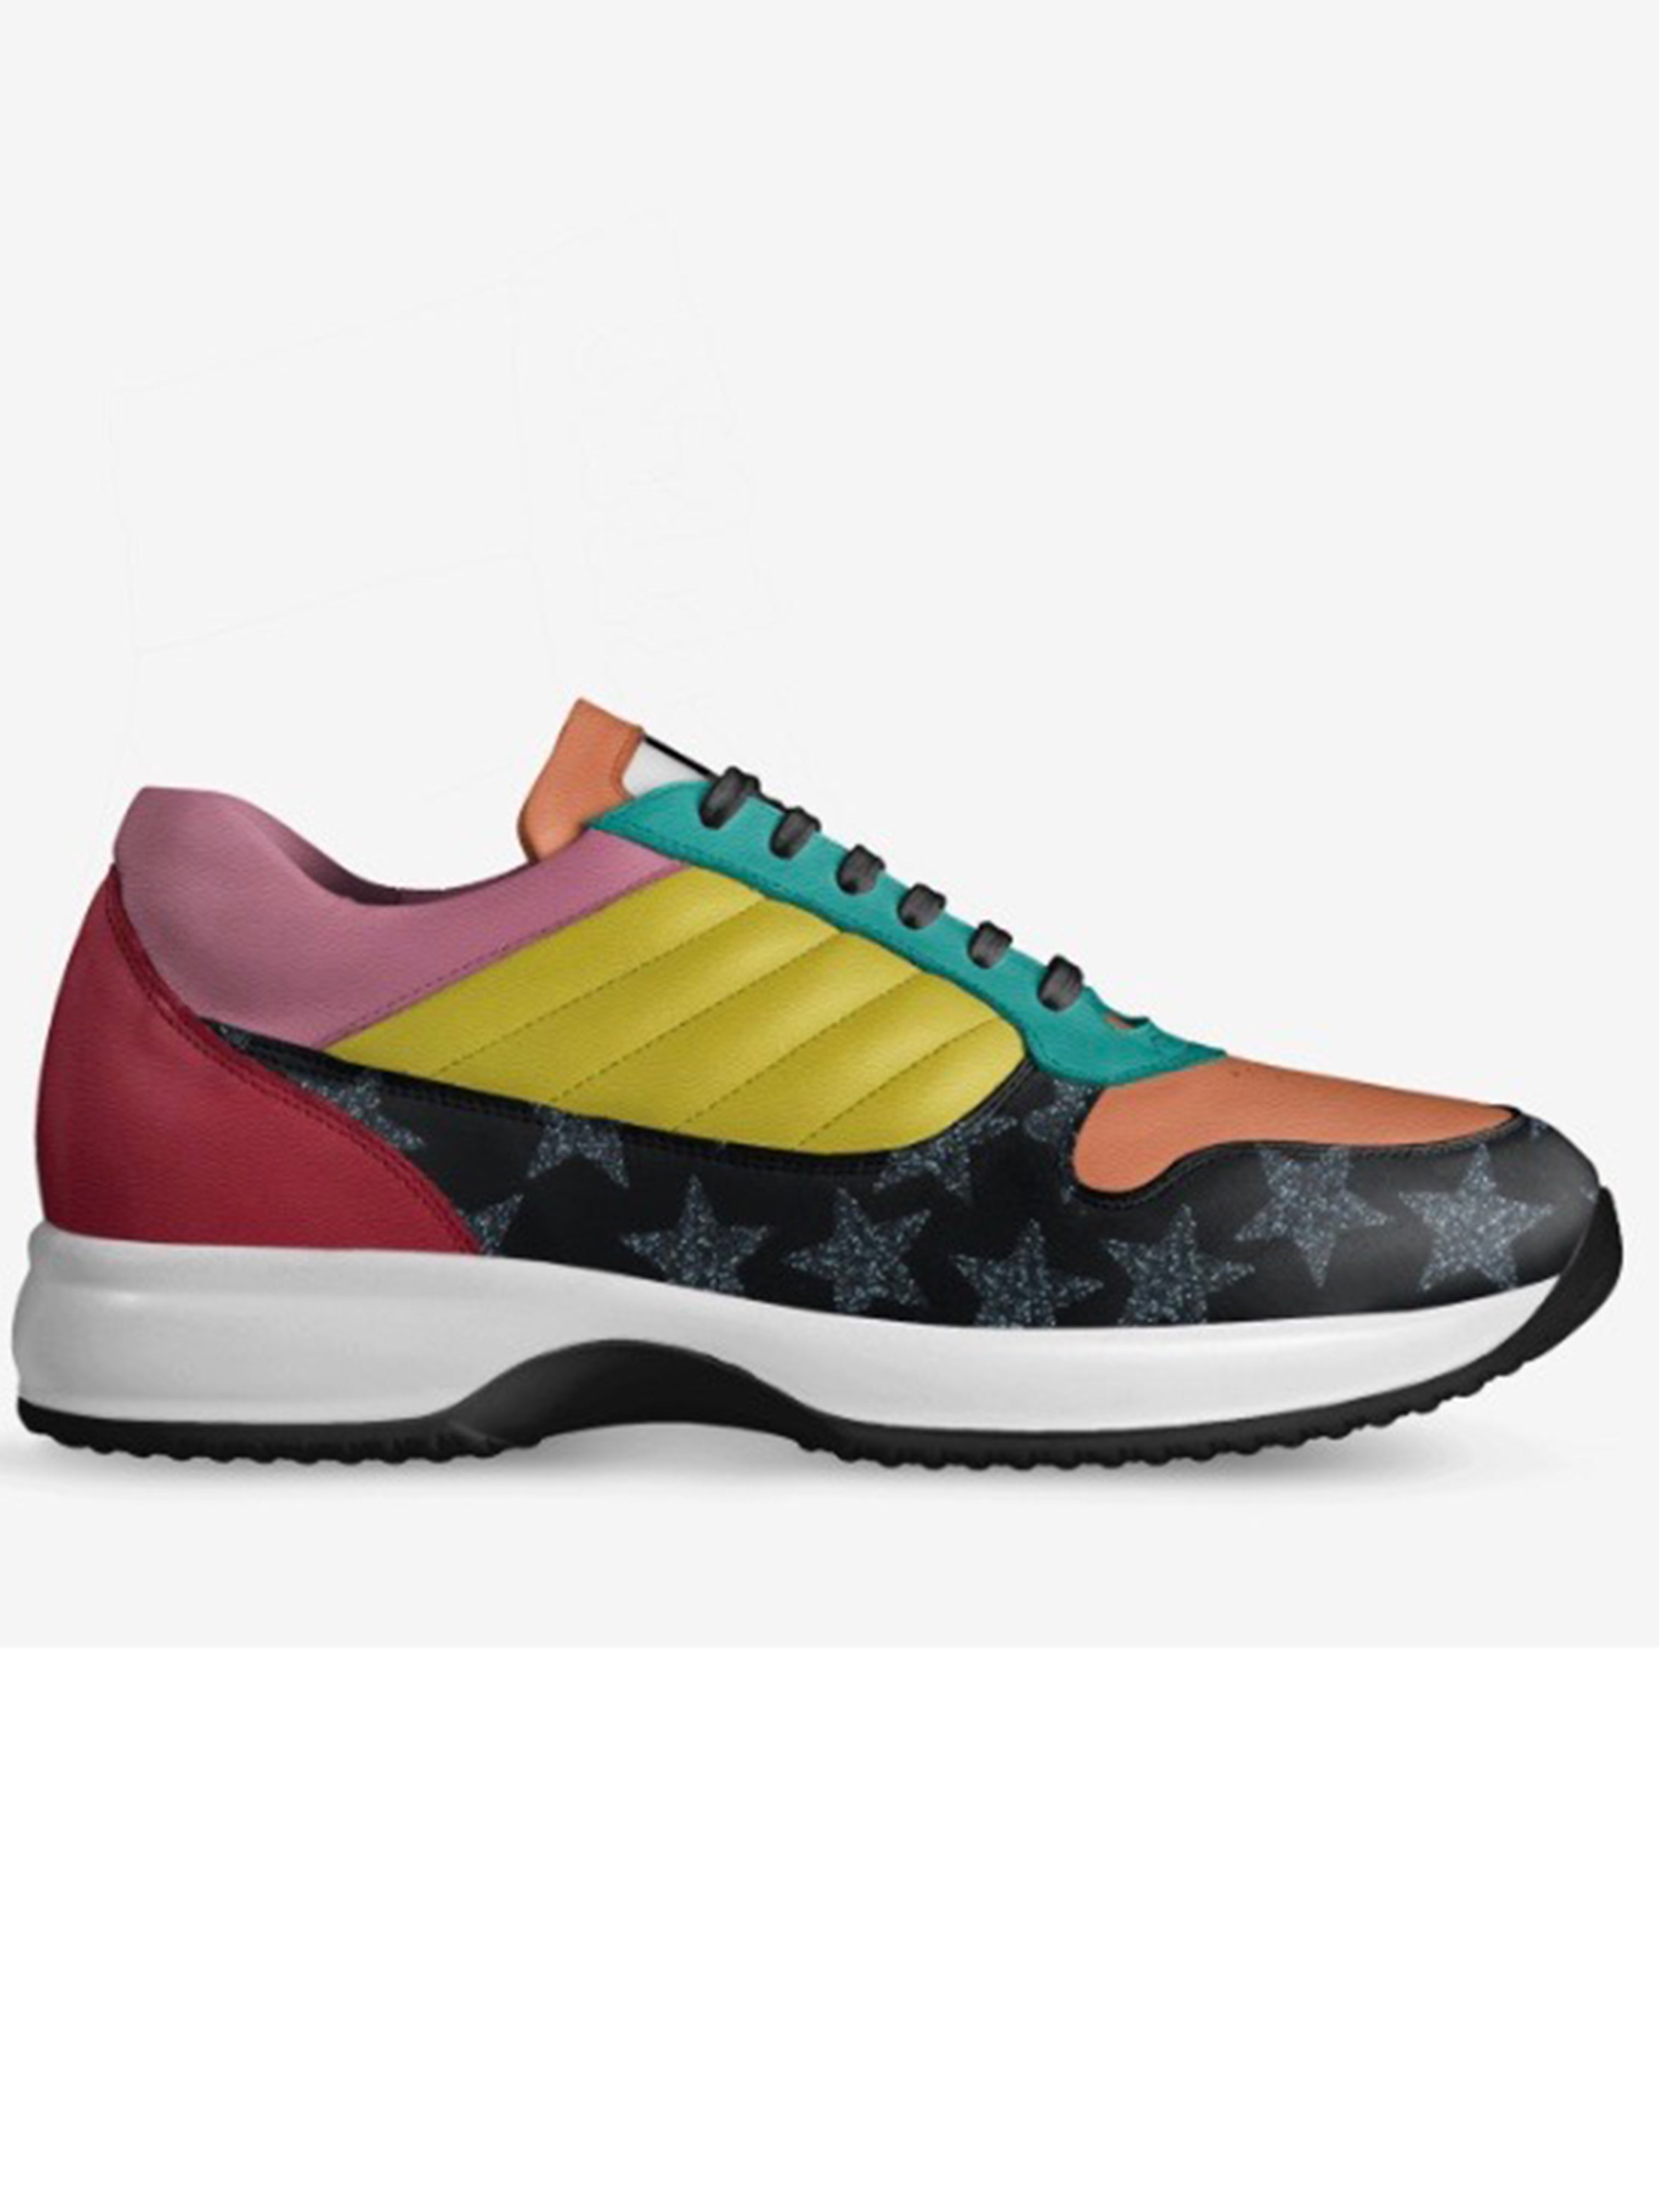 Rainbow Retro  Low Tops Sneakers by Brit Boss - Brit Boss